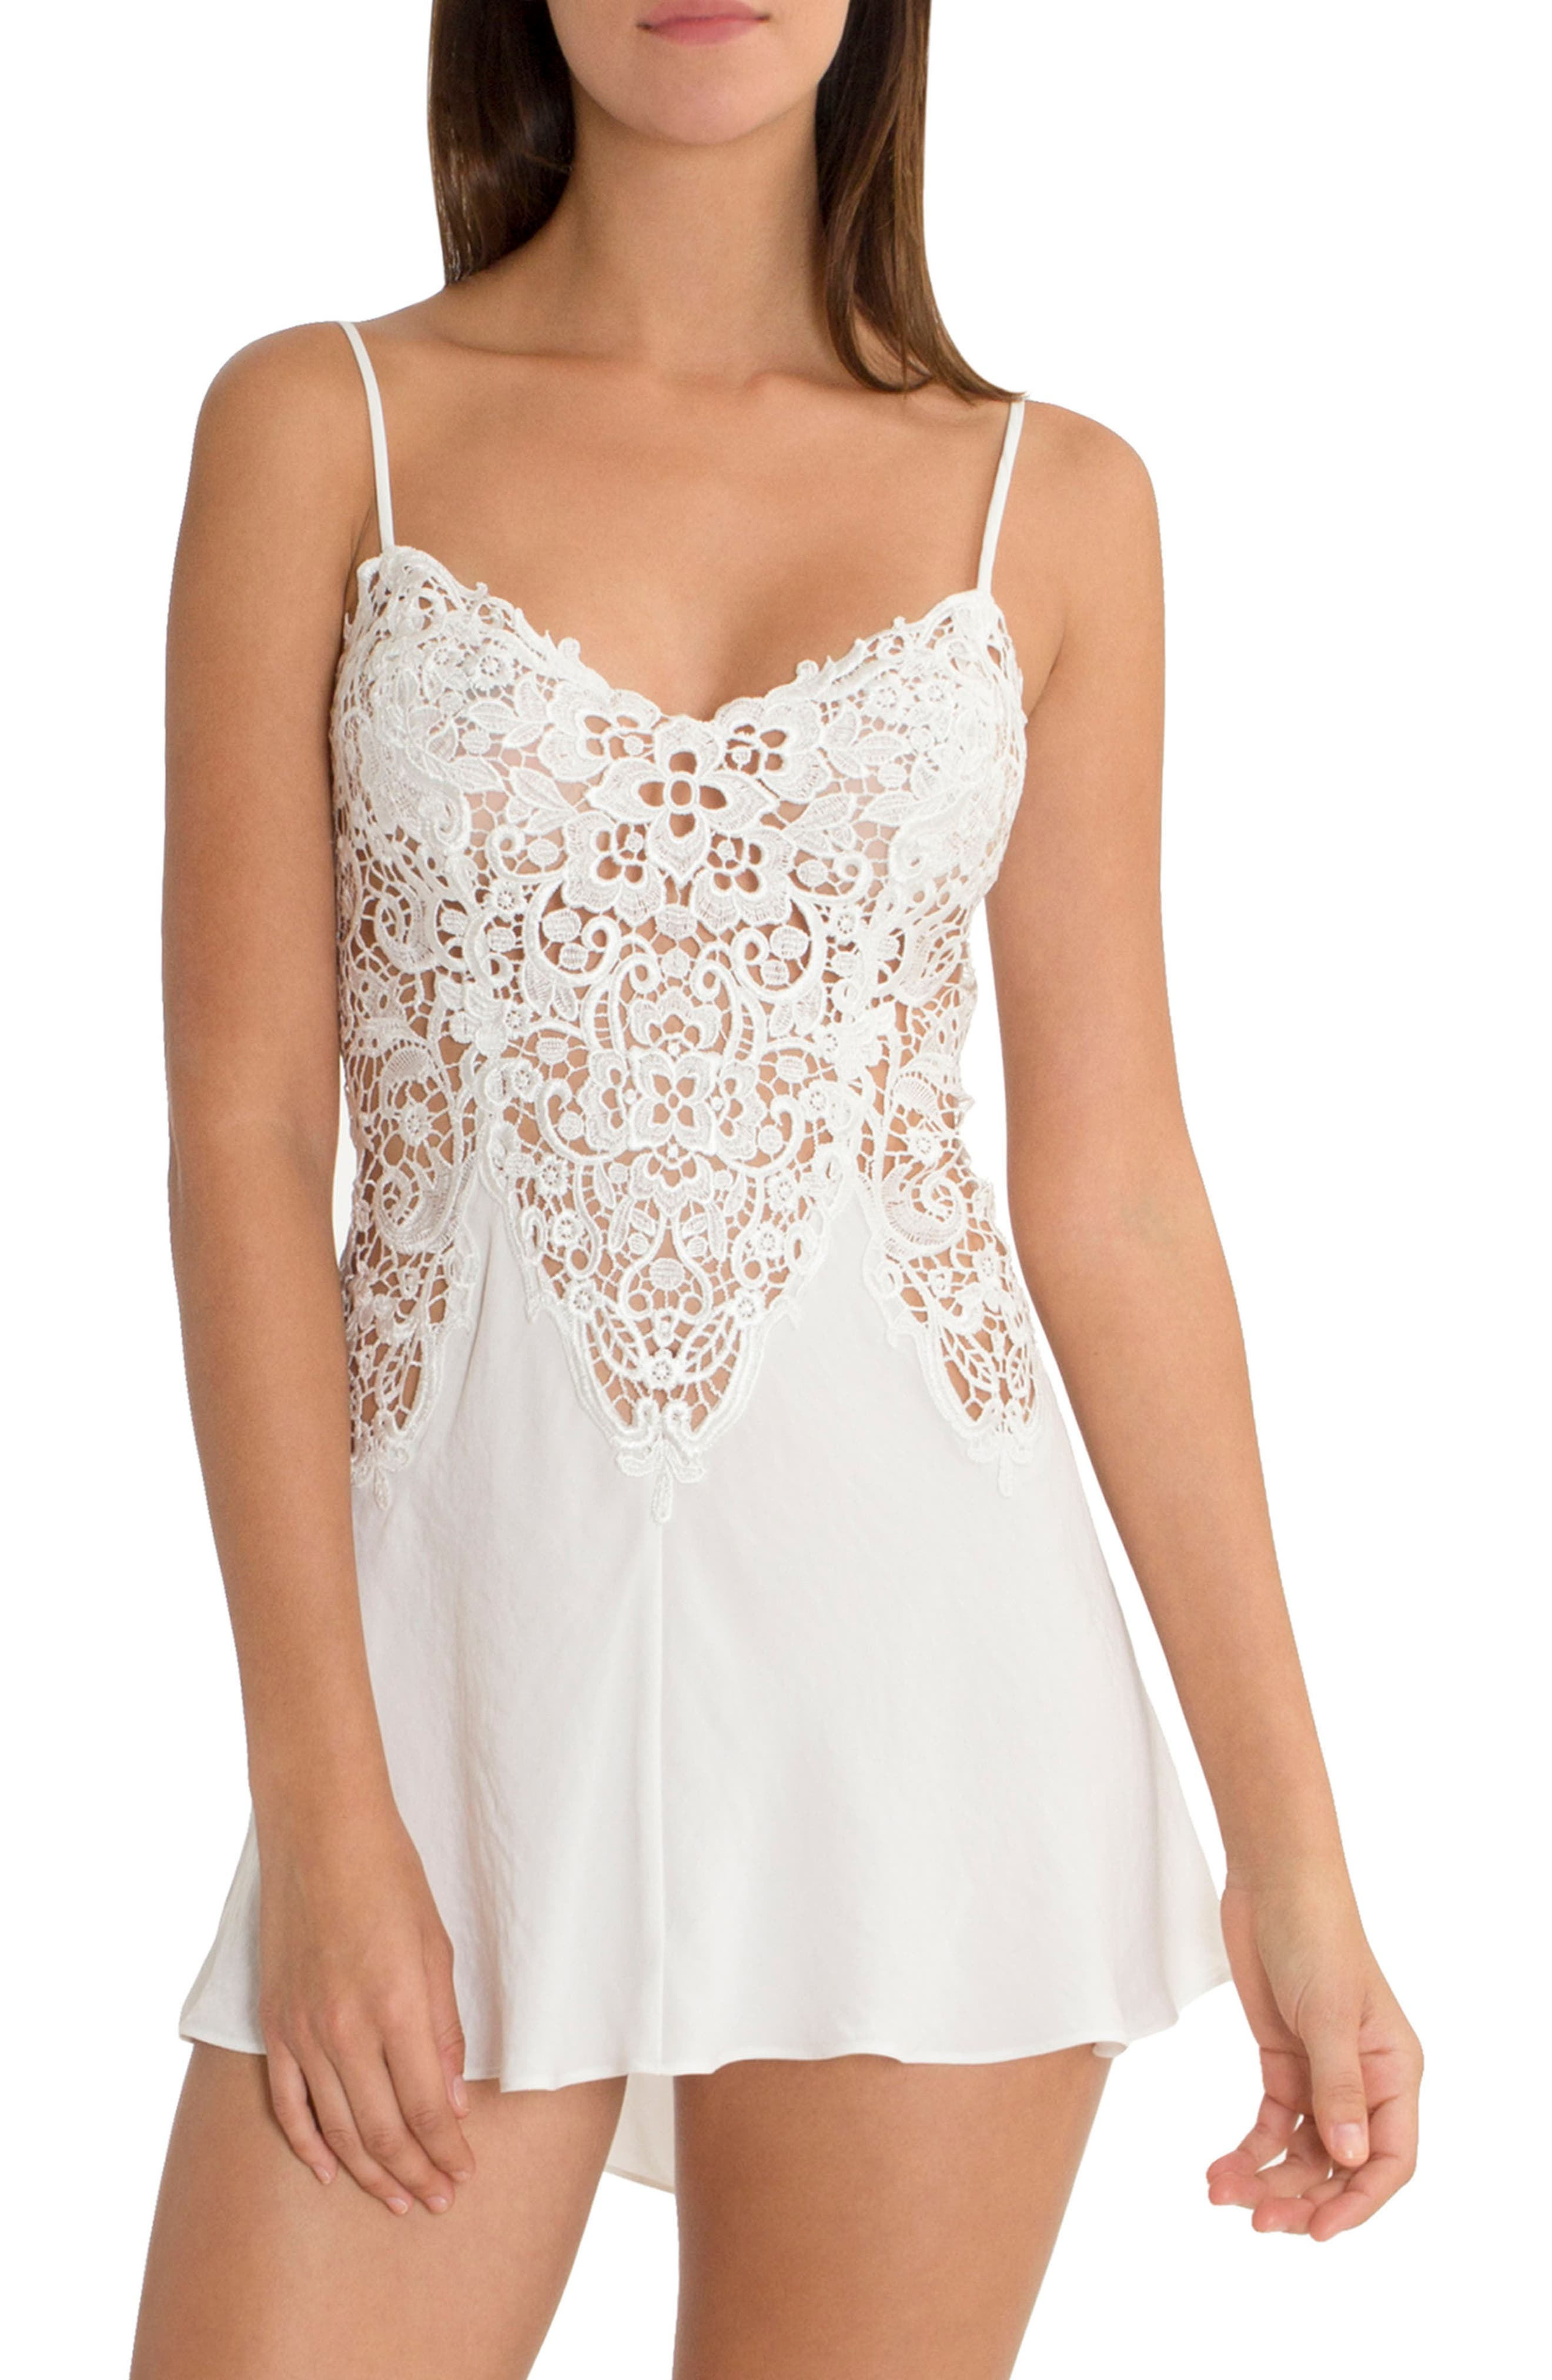 IN BLOOM BY JONQUIL, Lace & Satin Chemise, Main thumbnail 1, color, IVORY